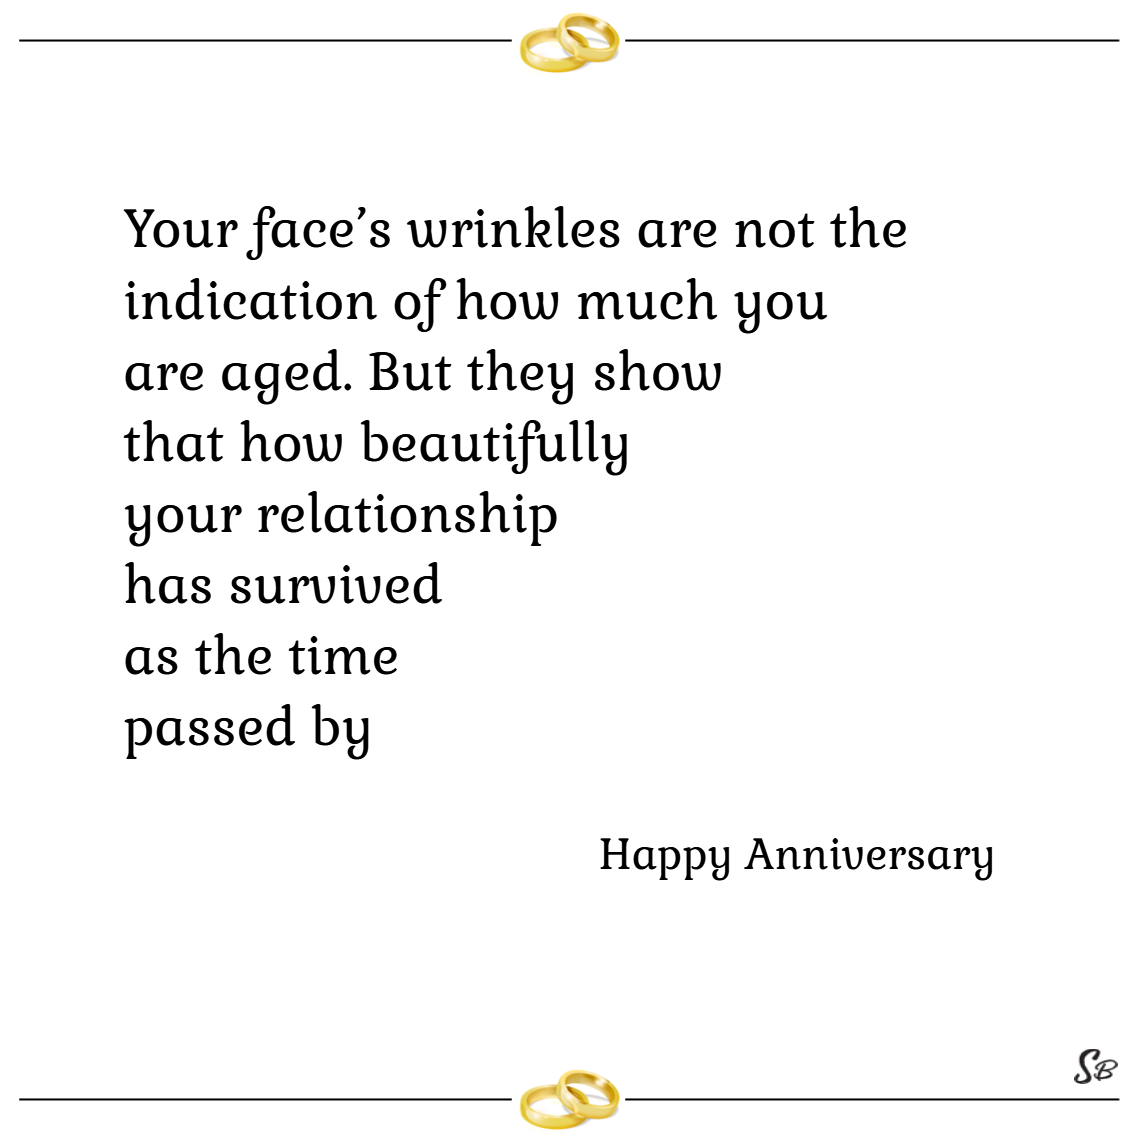 Your face's wrinkles are not the indication of how much you are aged. but they show that how beautifully your relationship has survived as the time passed by